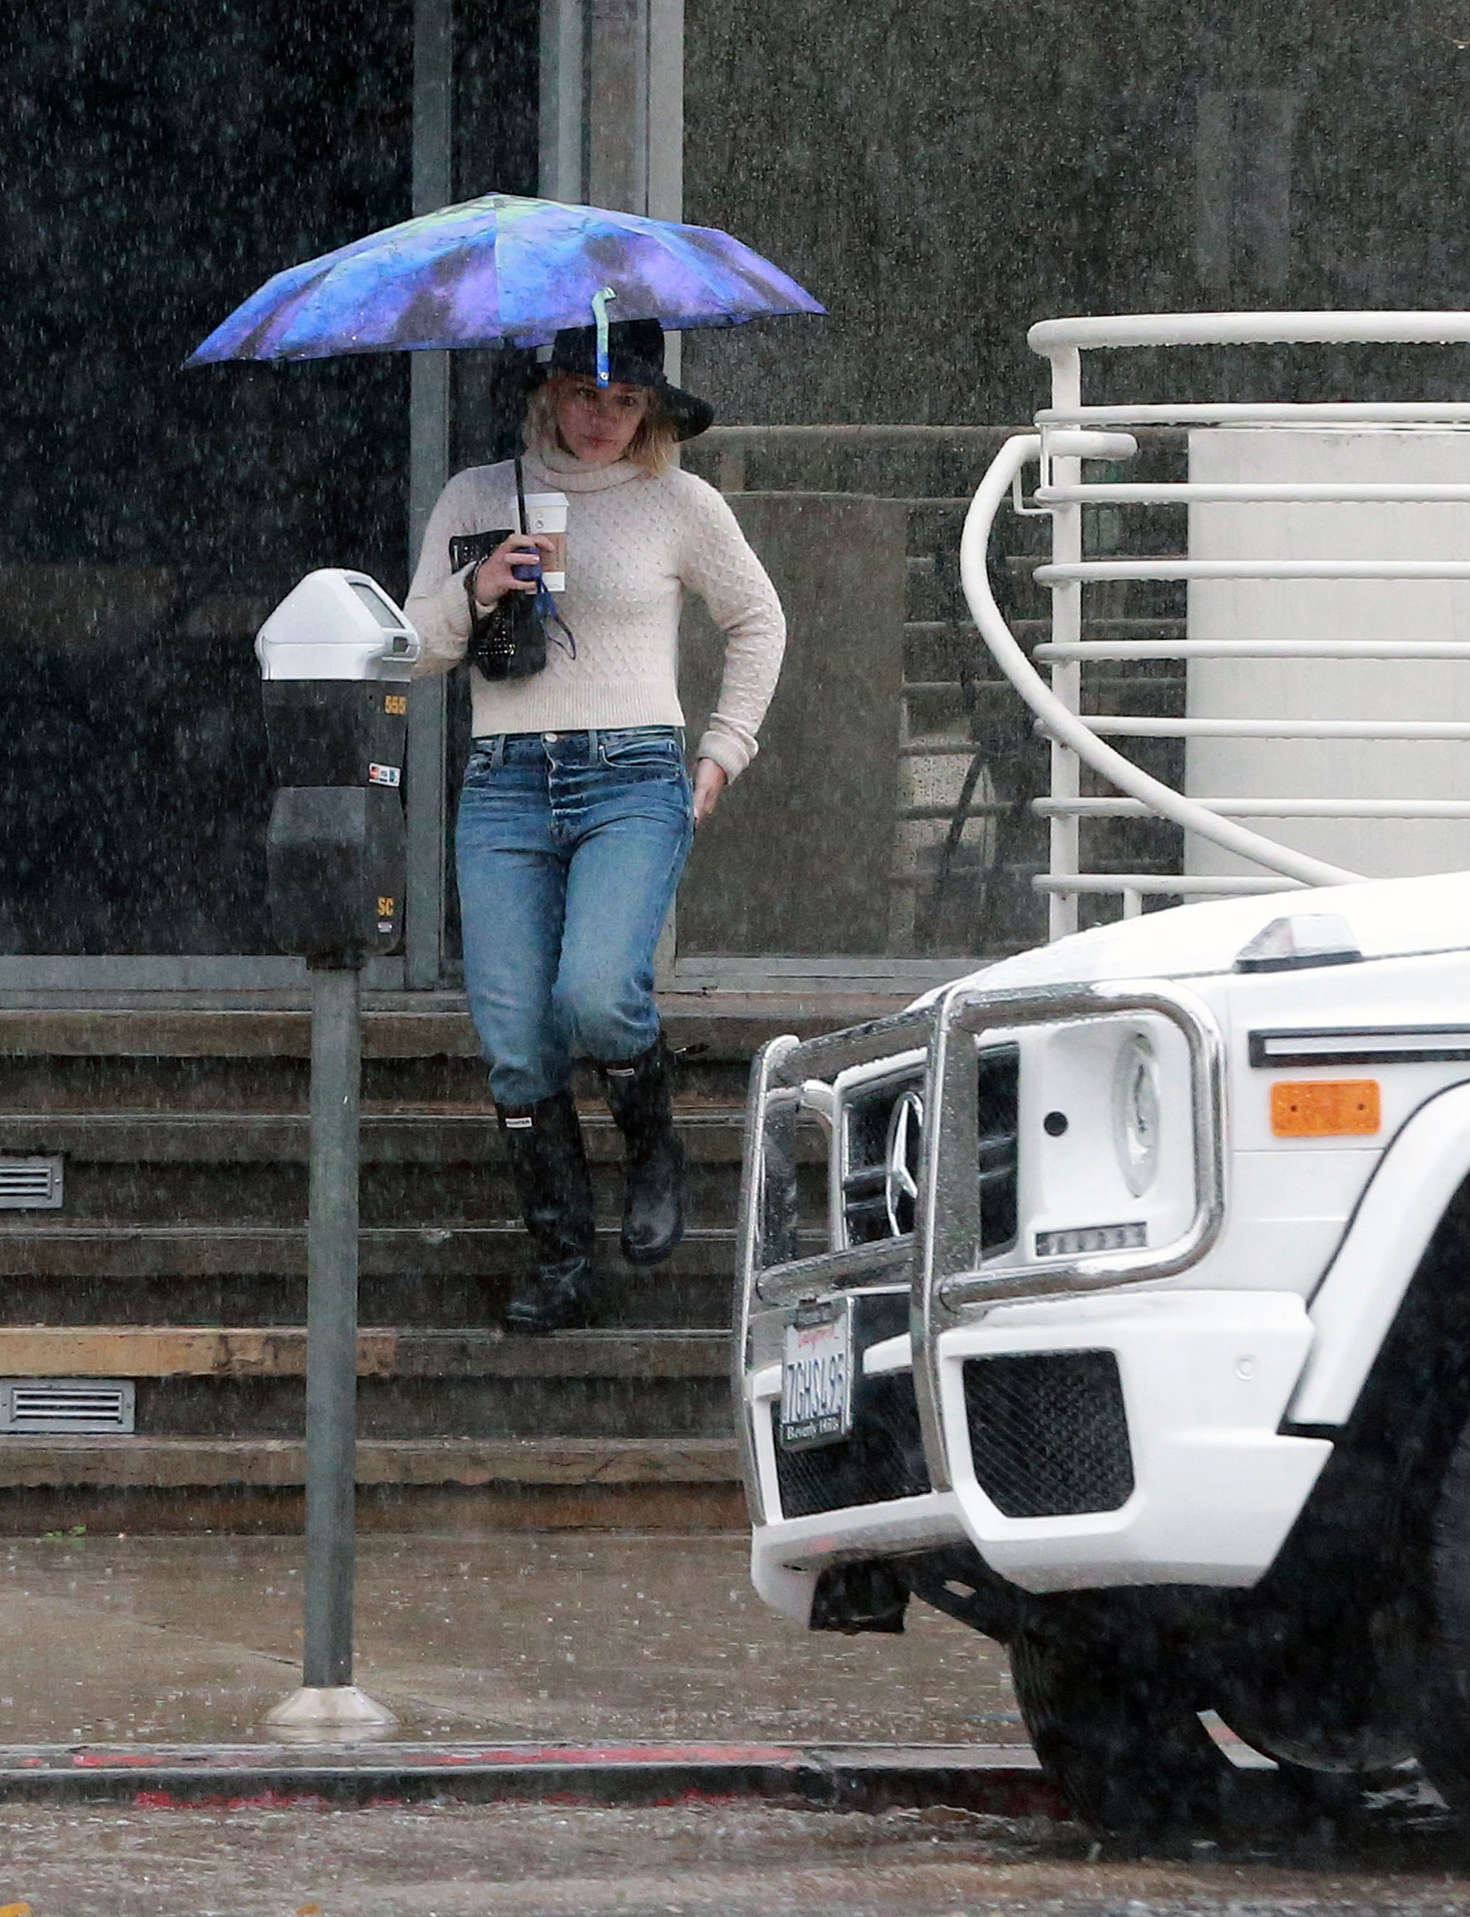 Hilary Duff 2016 : Hilary Duff in Jeans out on a rainy day -24